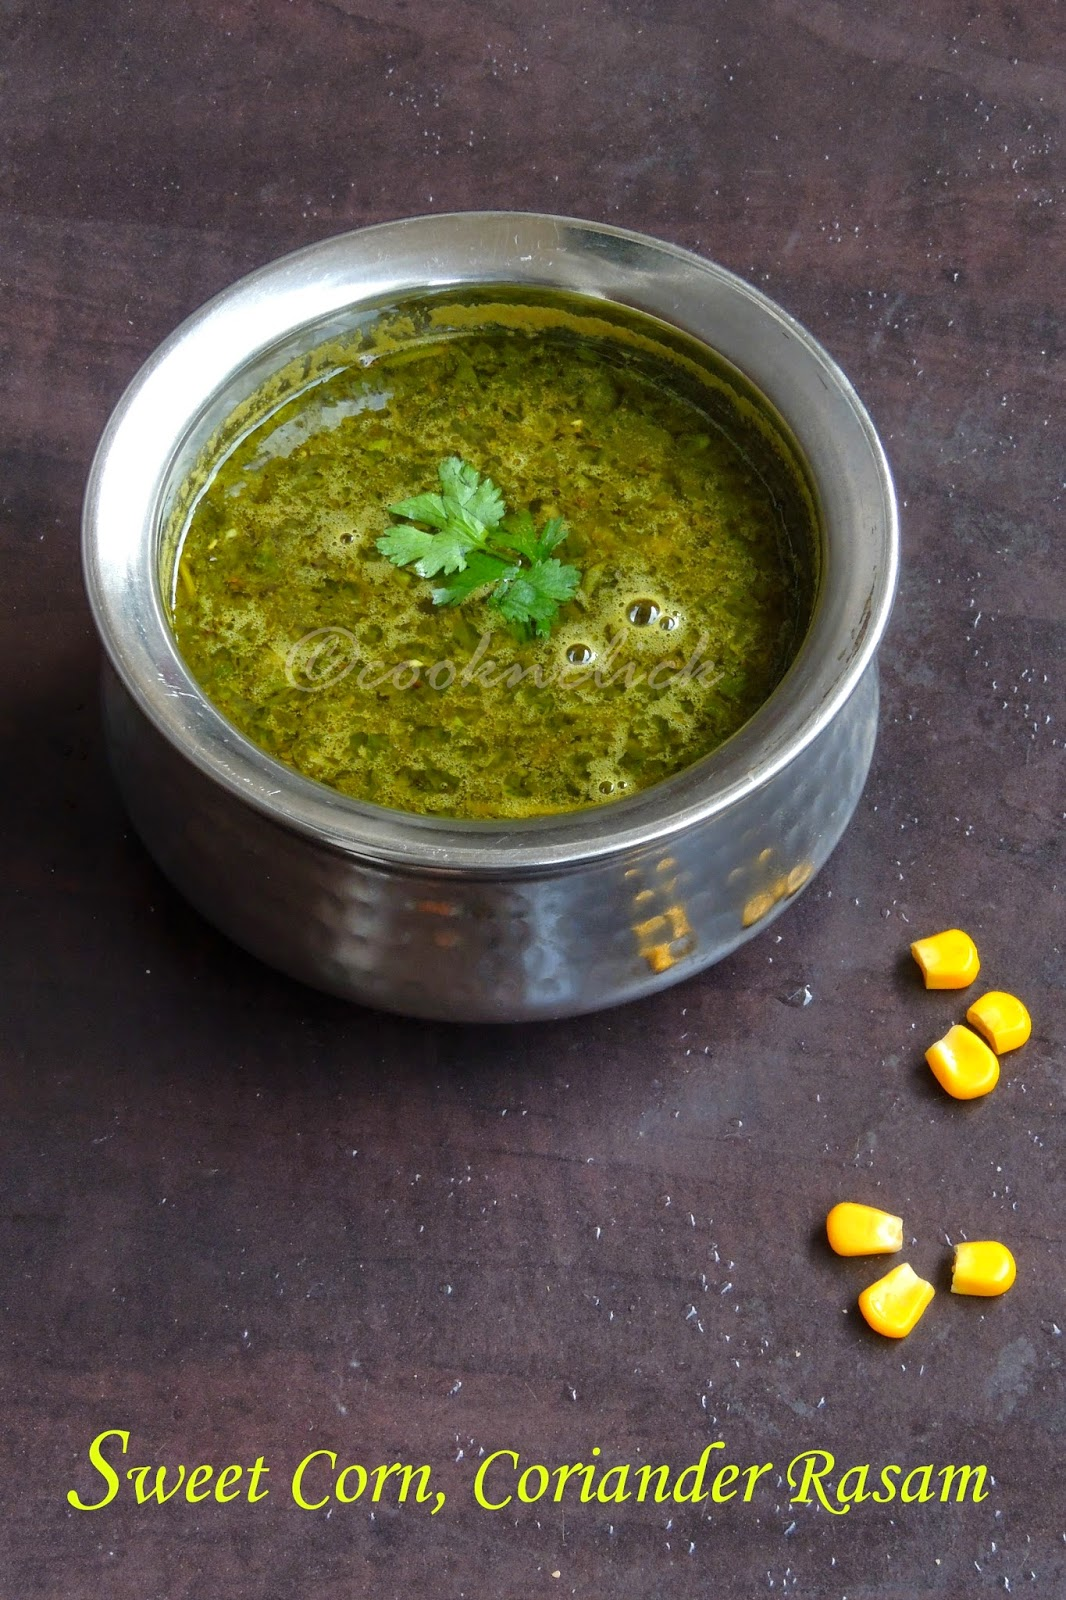 coriander rasam with sweet corn kernels